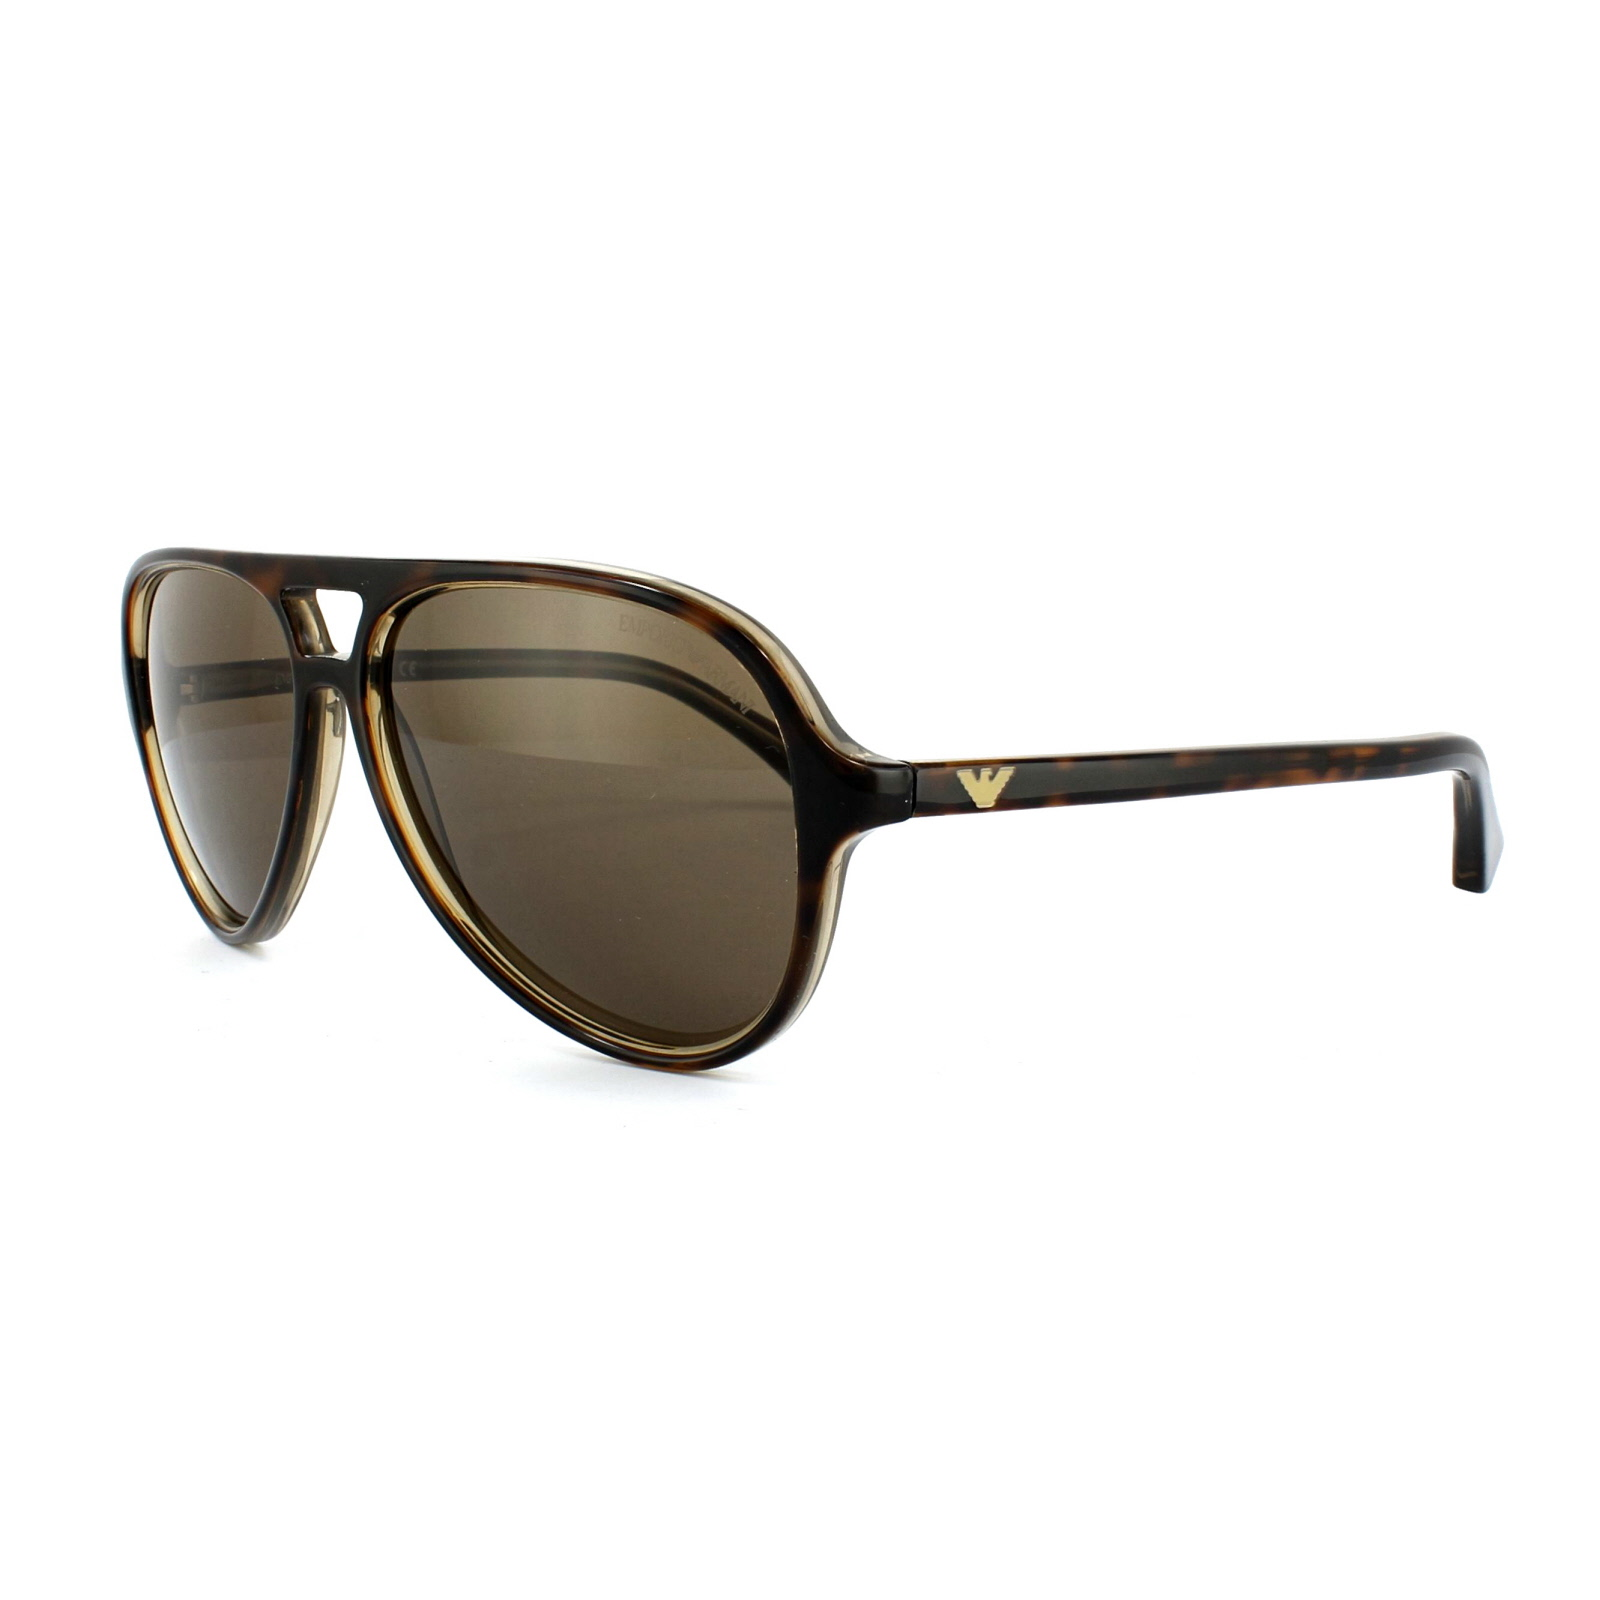 Cheap Emporio Armani 4063 Sunglasses